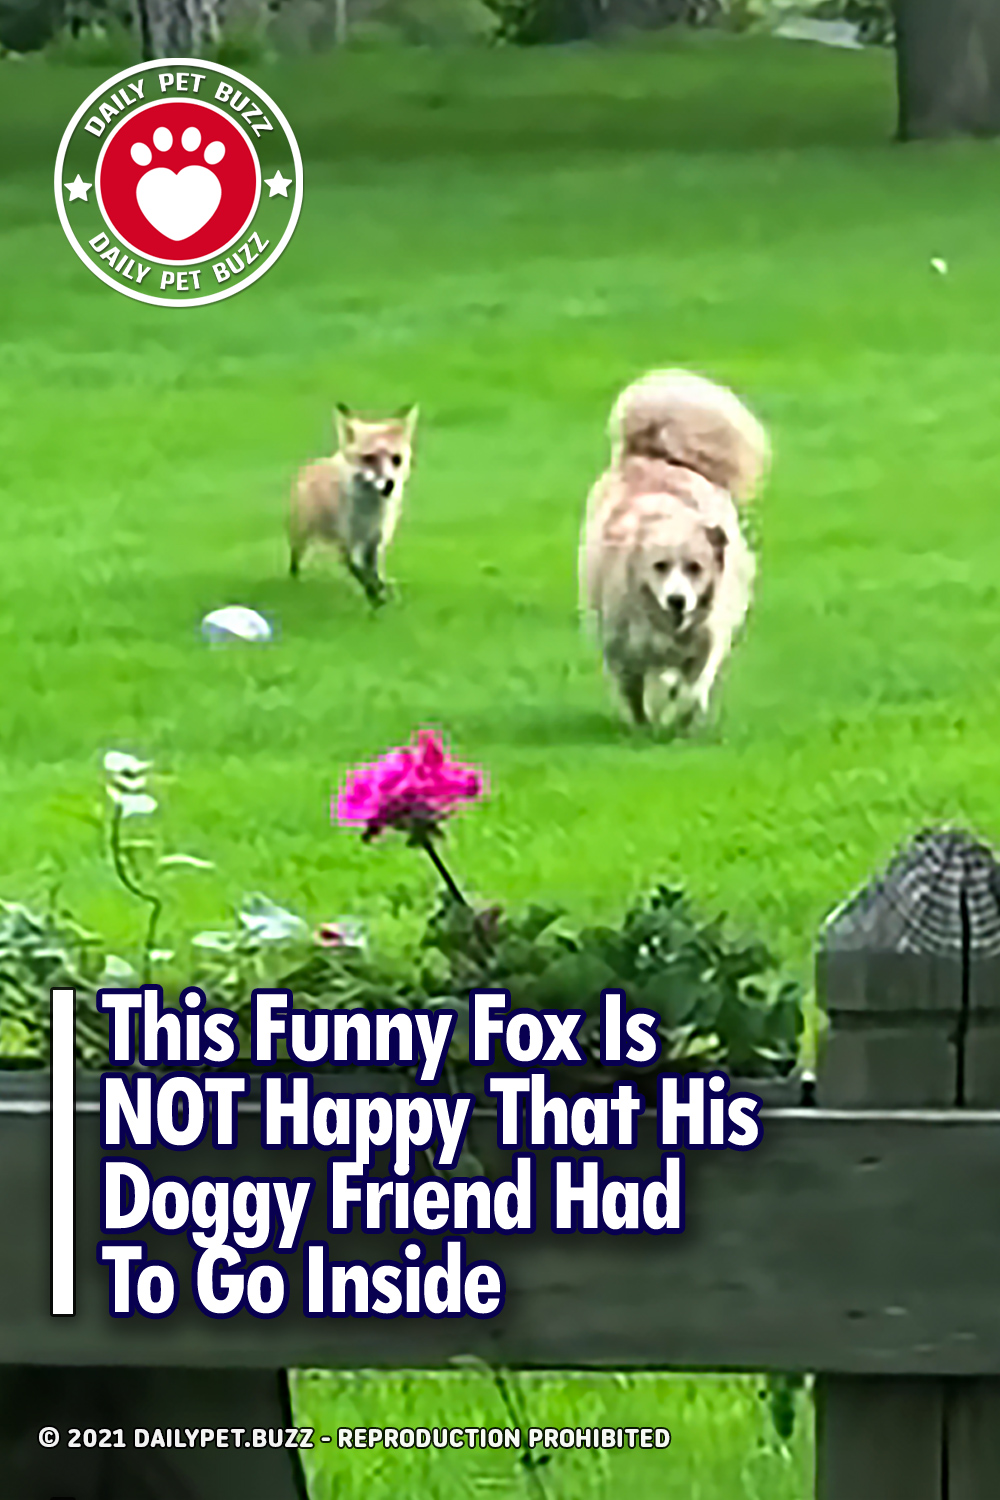 This Funny Fox Is NOT Happy That His Doggy Friend Had To Go Inside